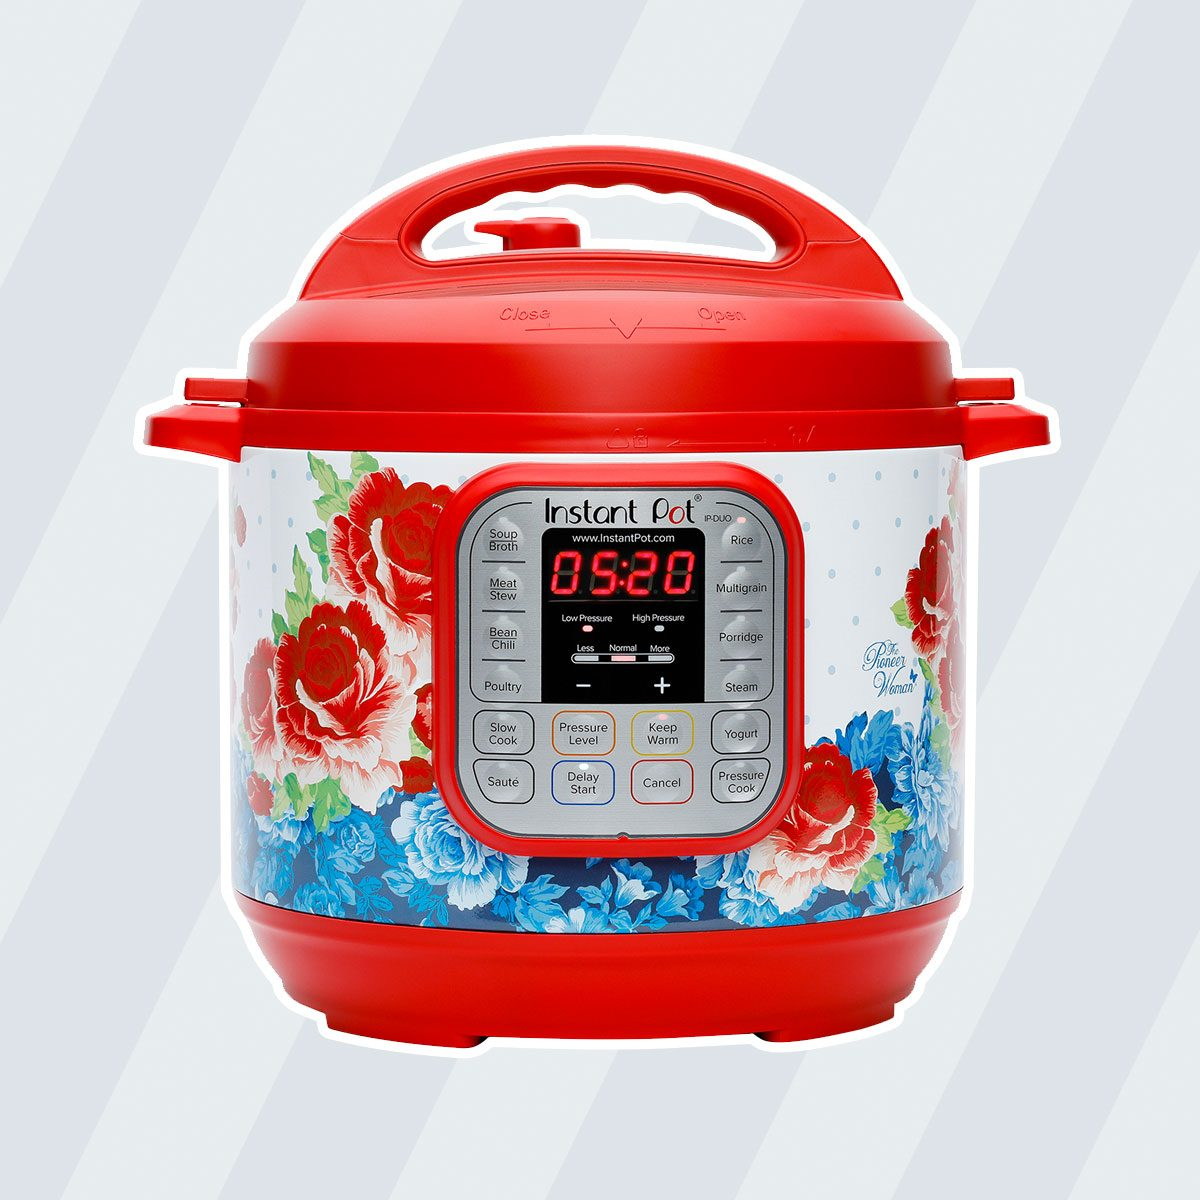 The Pioneer Woman Instant Pot